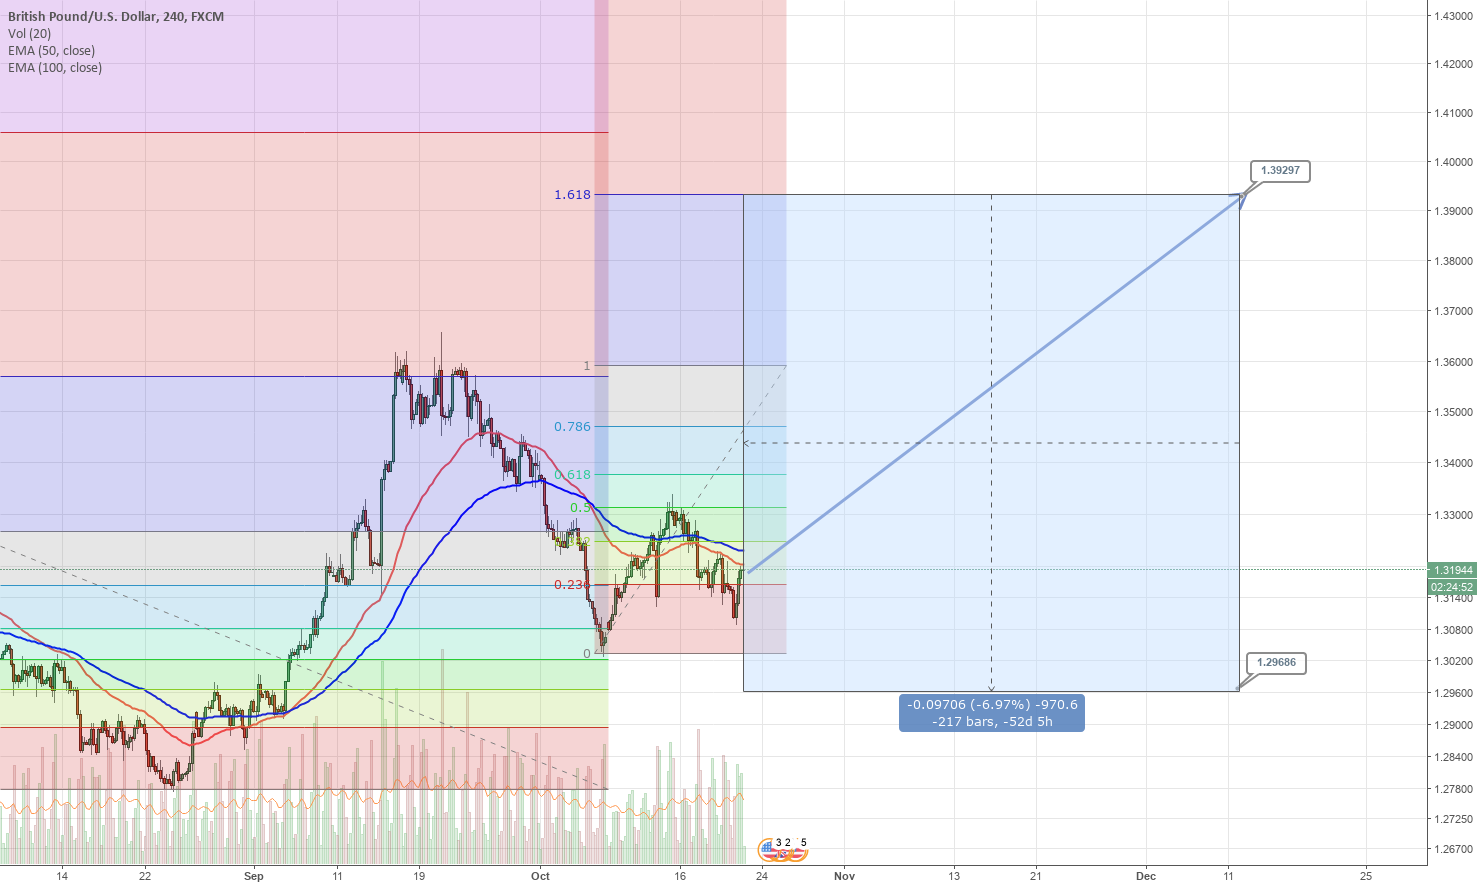 Long term perspective on GBPUSD